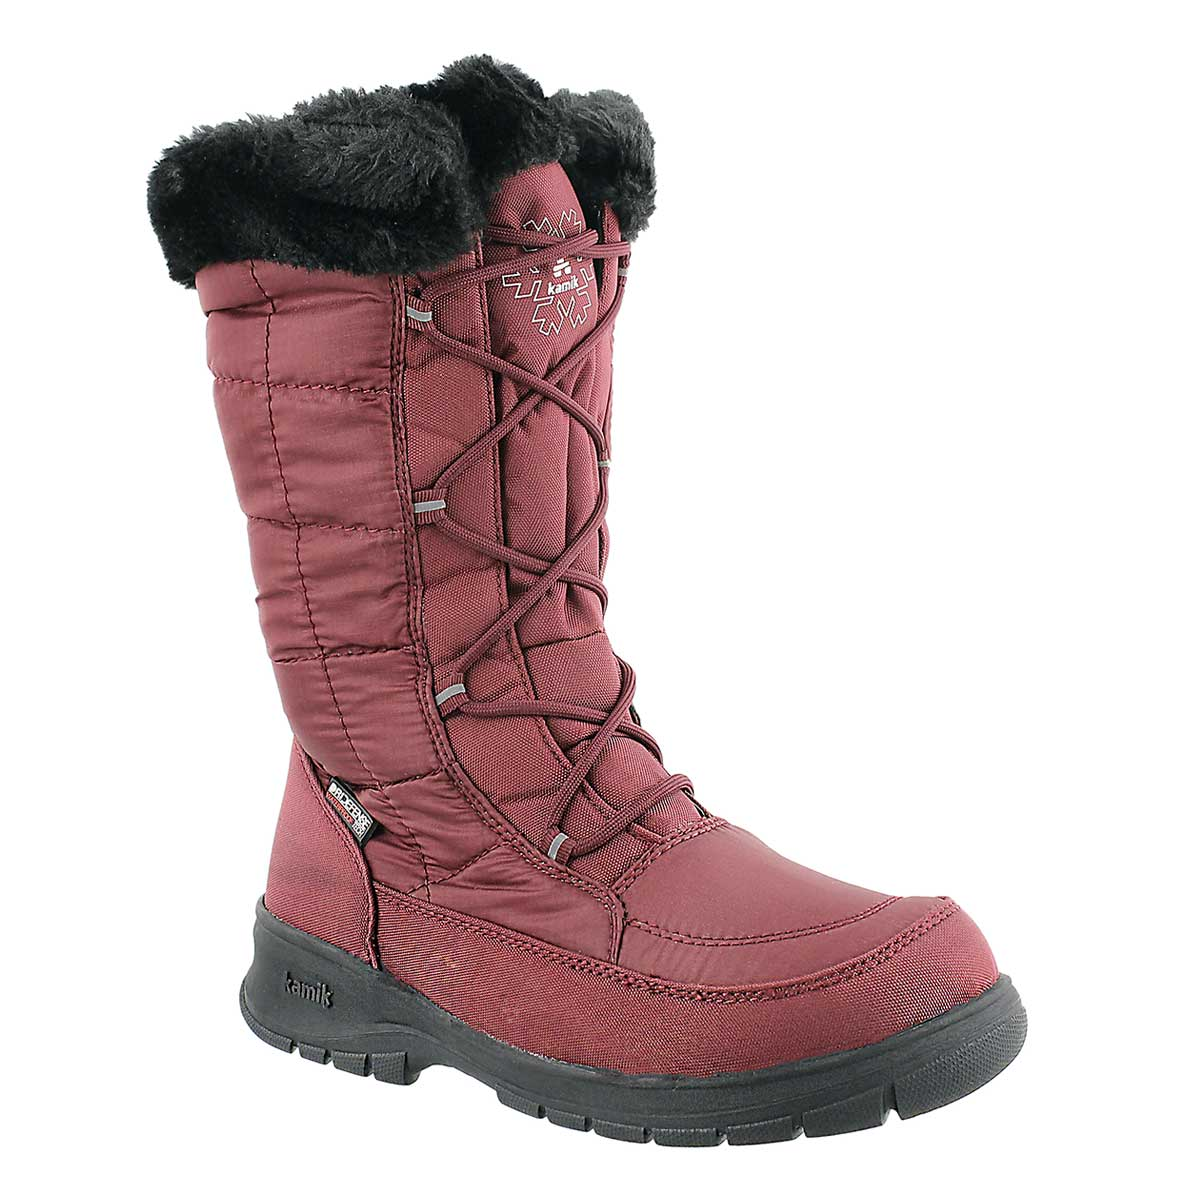 Womens snow boots size 9 wide – New Fashion Photo Blog